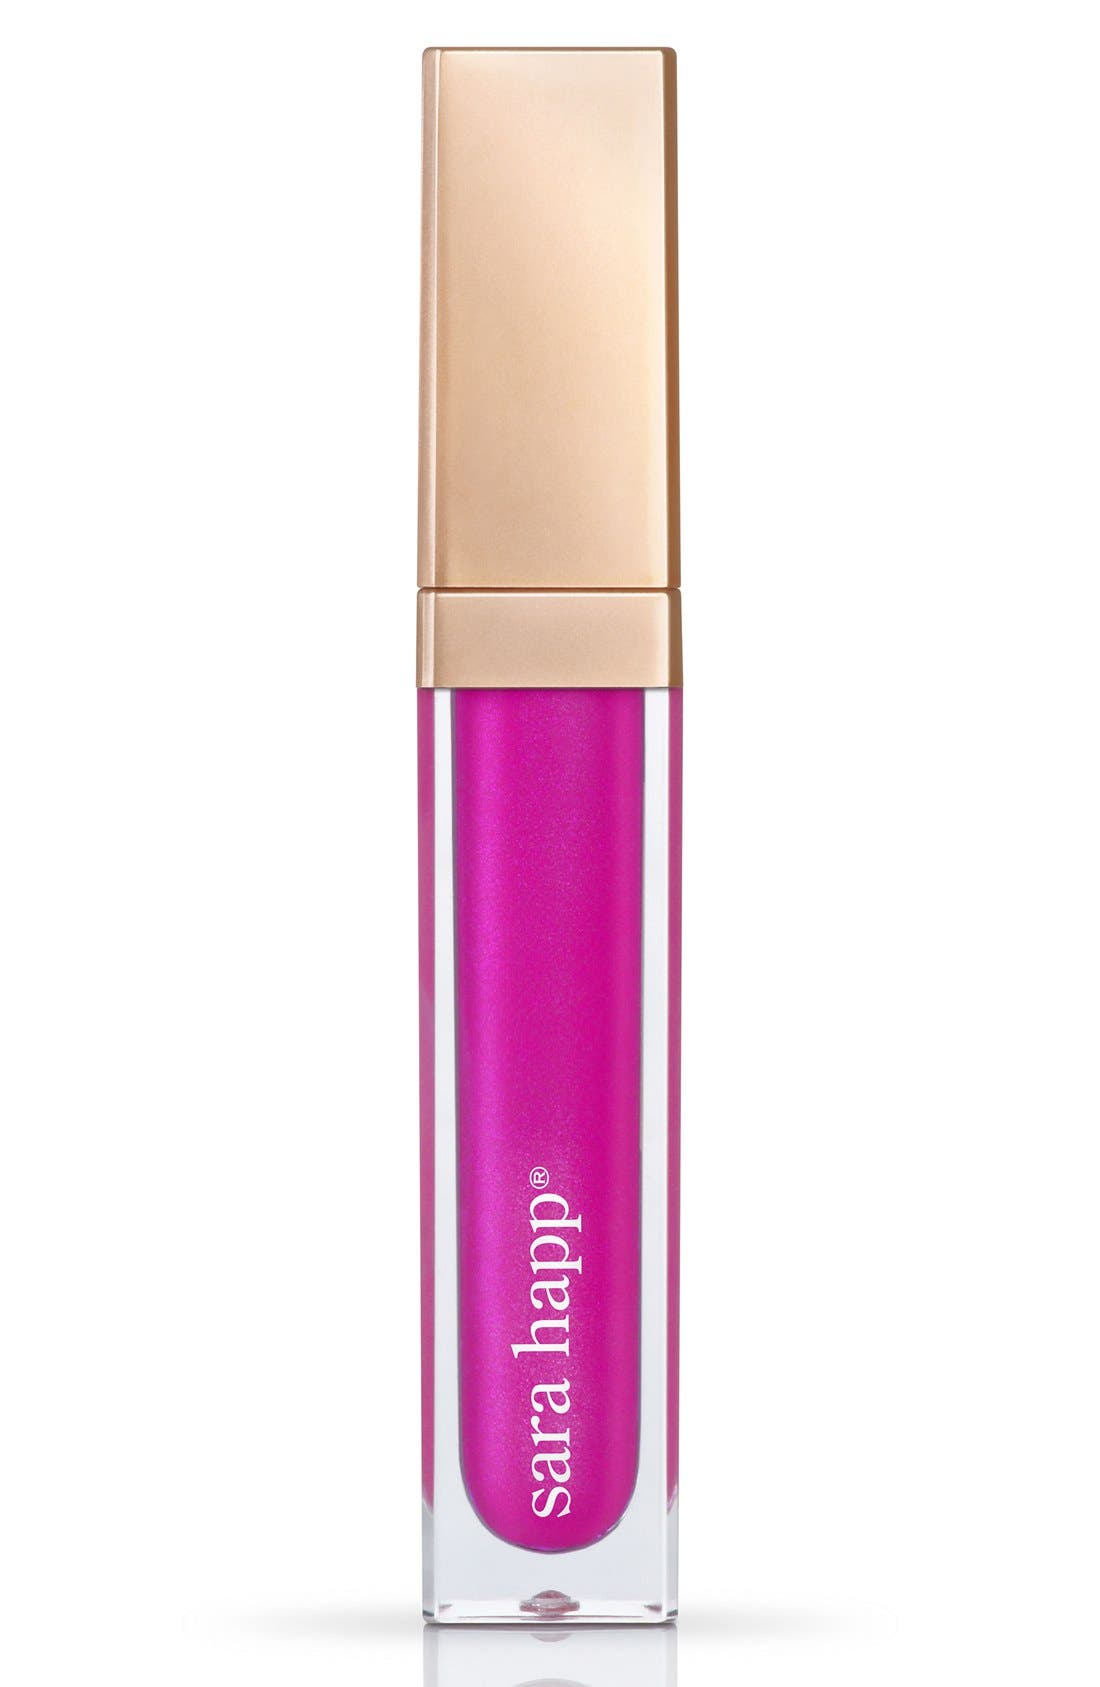 sara happ® The Lip Slip® Fuchsia One Luxe Lip Gloss